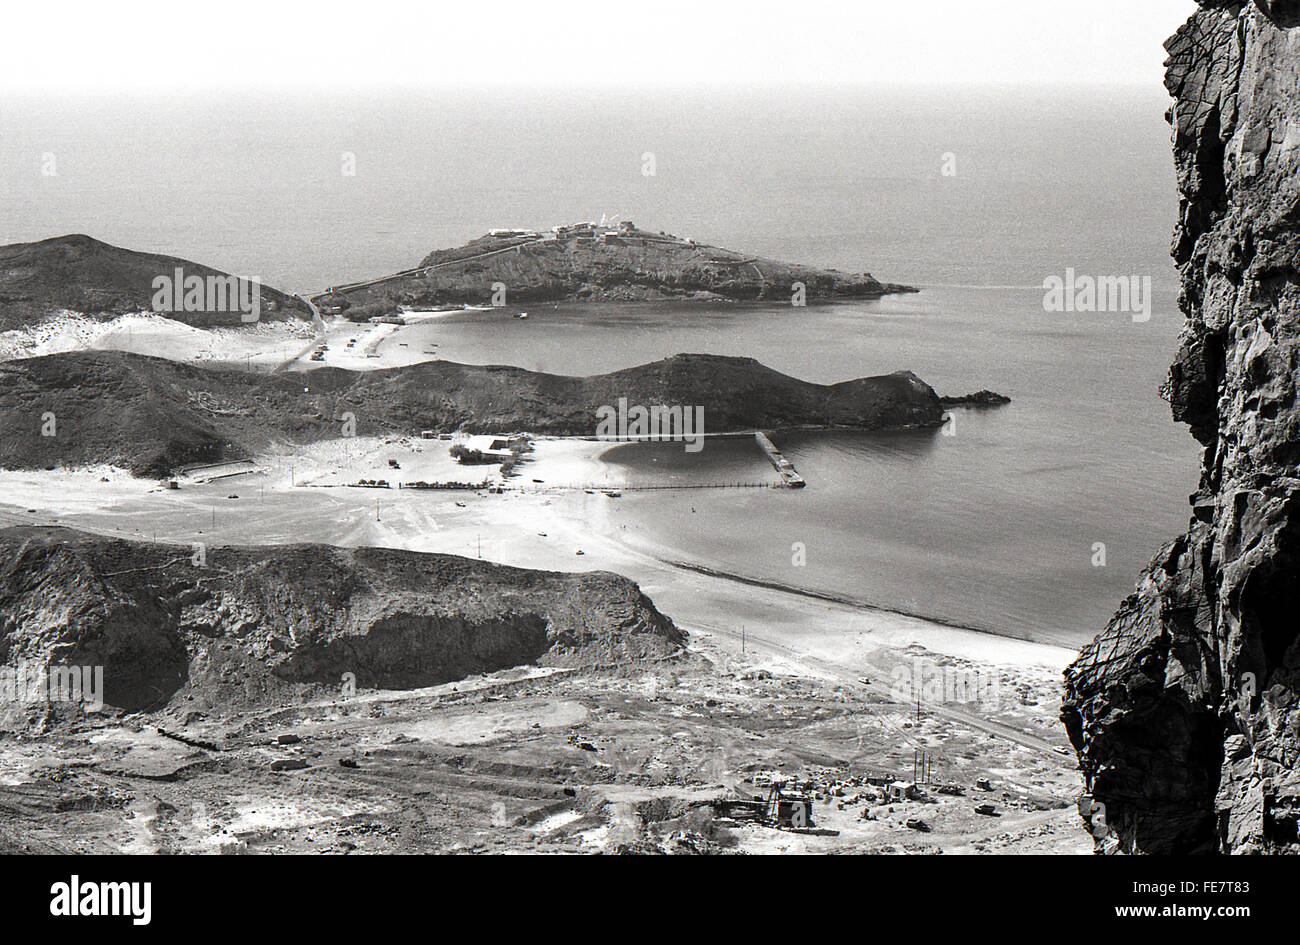 Aden coast and beaches 1967 British withdrawal - Stock Image